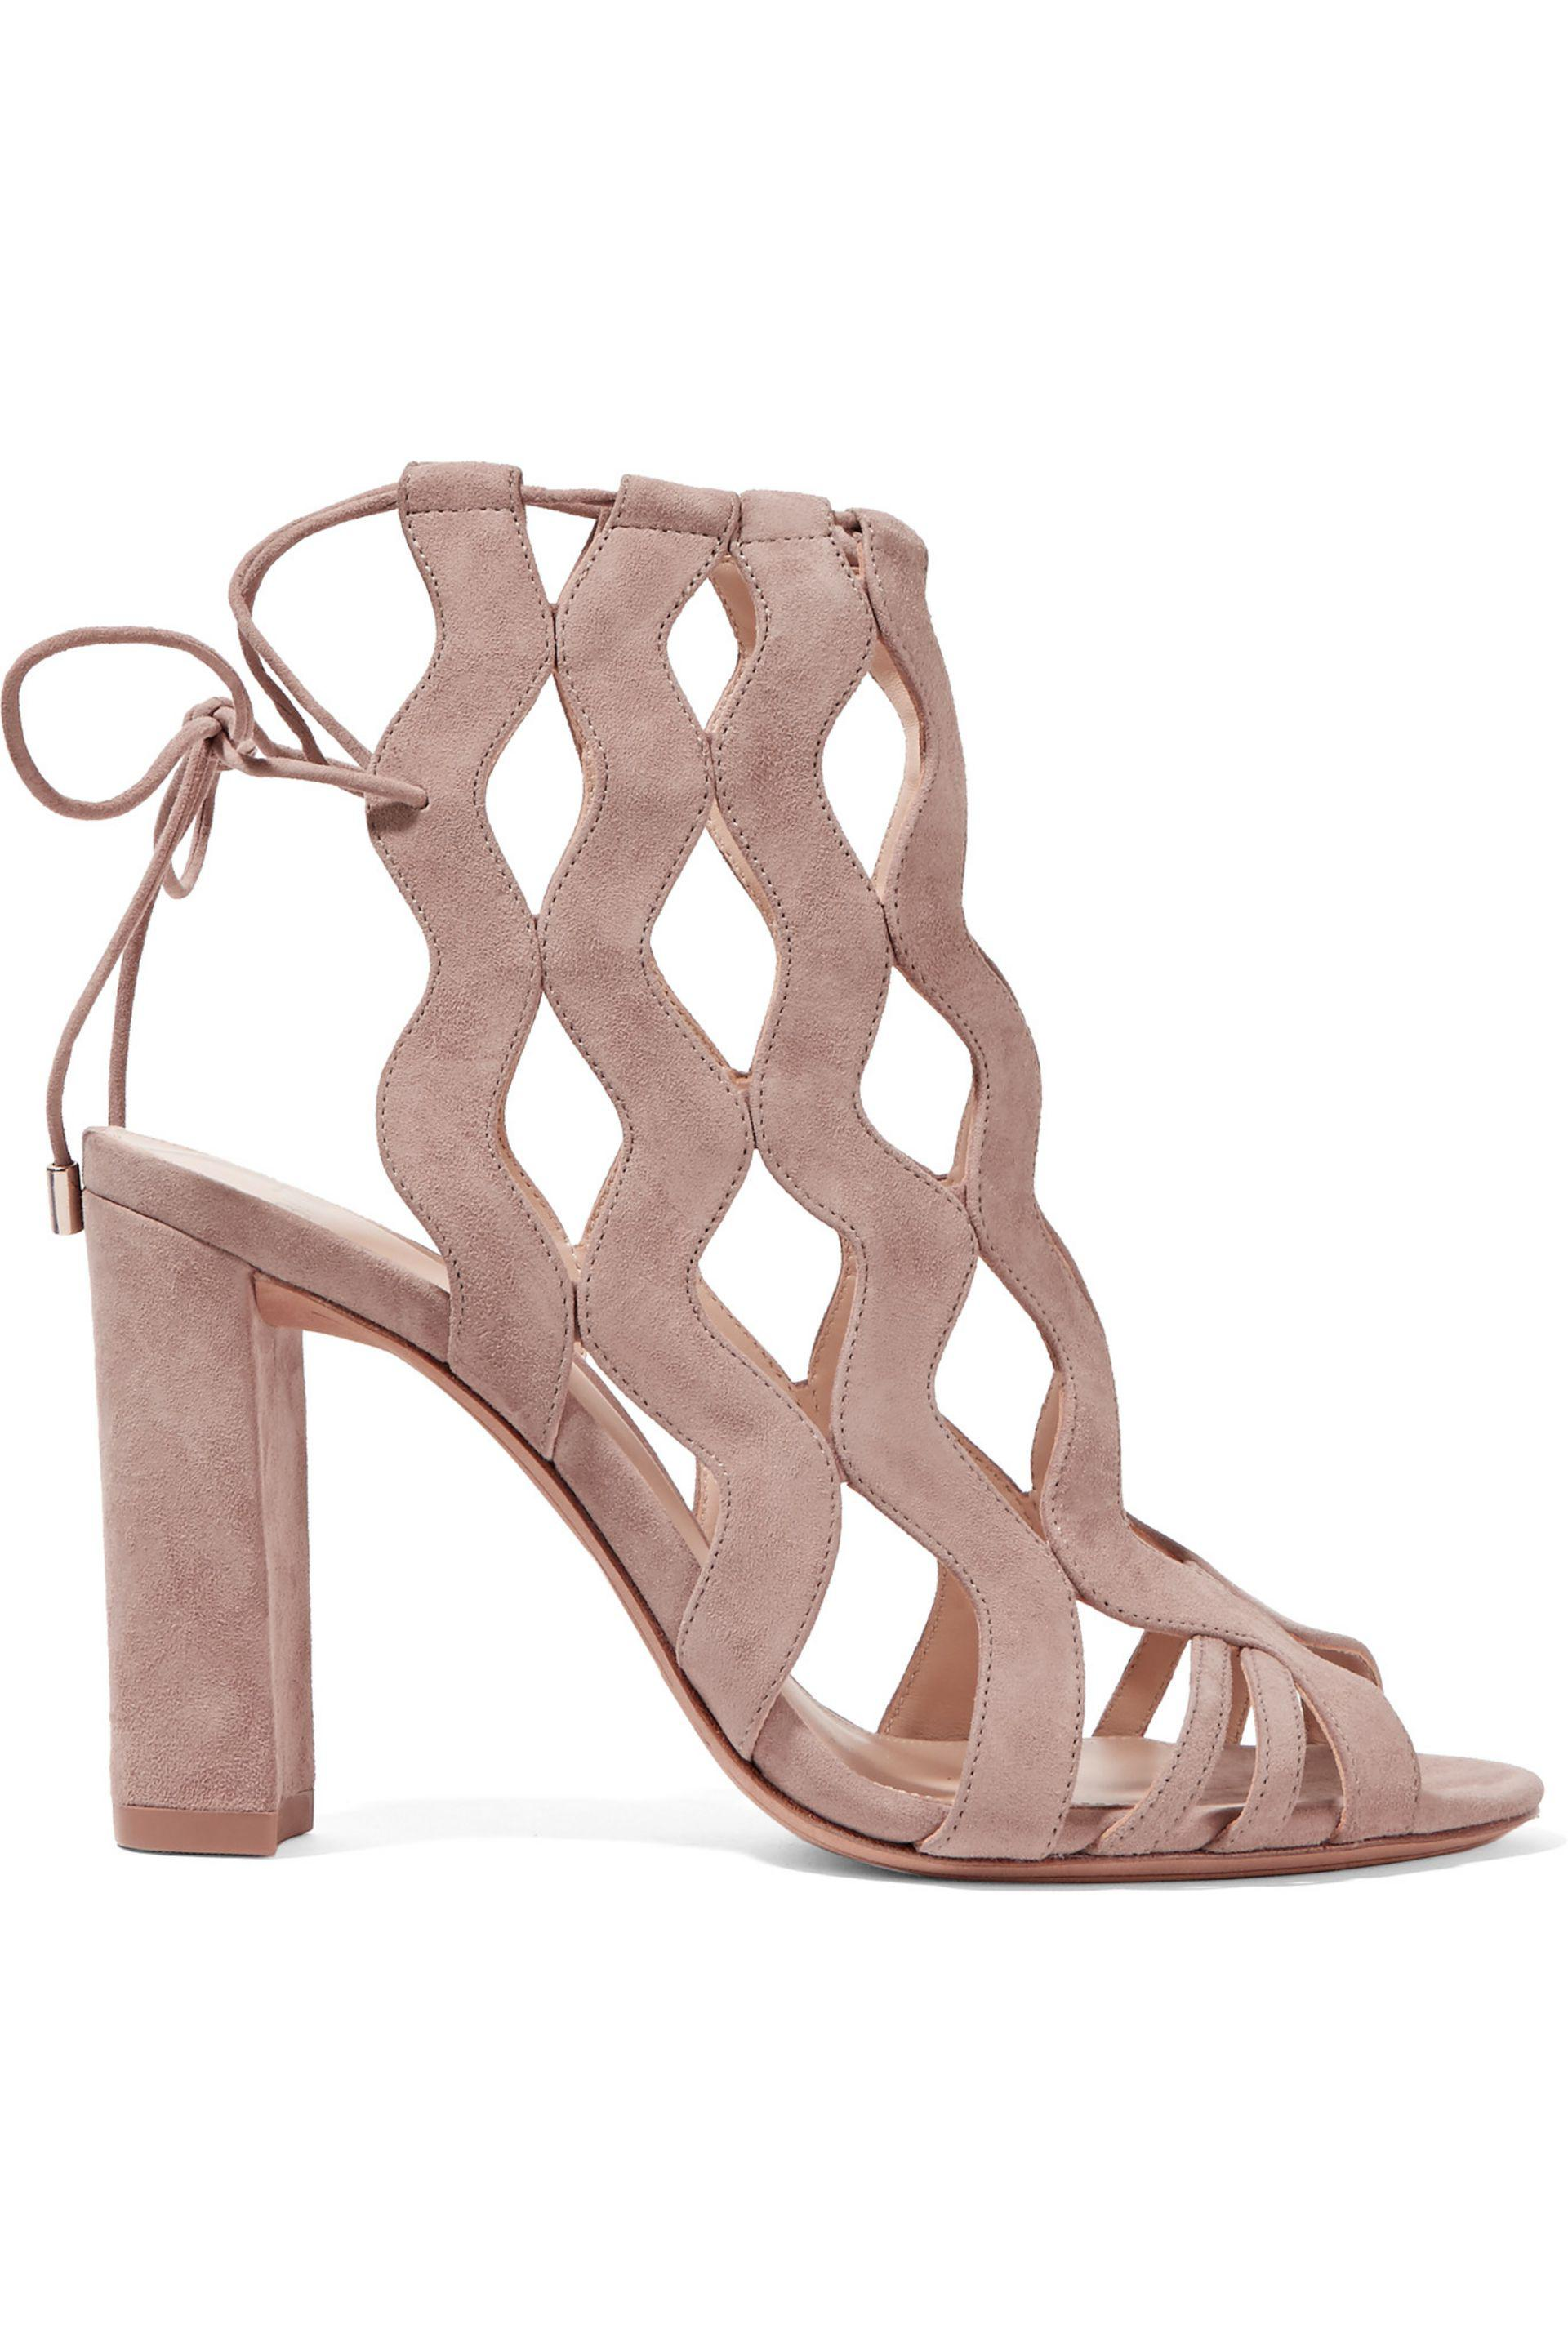 Alexandre Birman. Women's Natural Loretta Cutout Suede Sandals